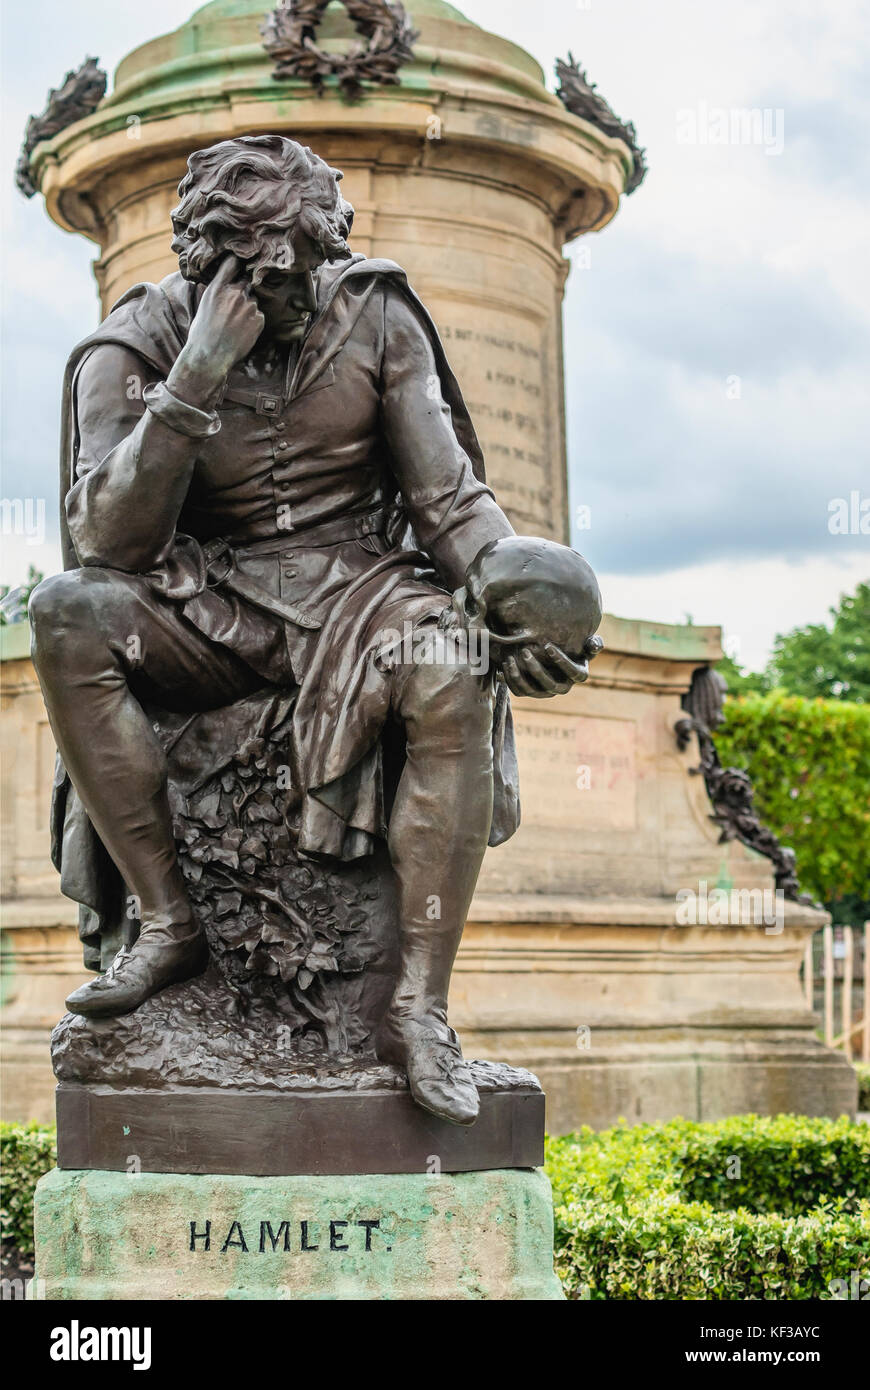 Hamlet sculpture at the Sir Ronald Gower Memorial to Shakespeare in Stratford upon Avon, Warwickshire, England. - Stock Image